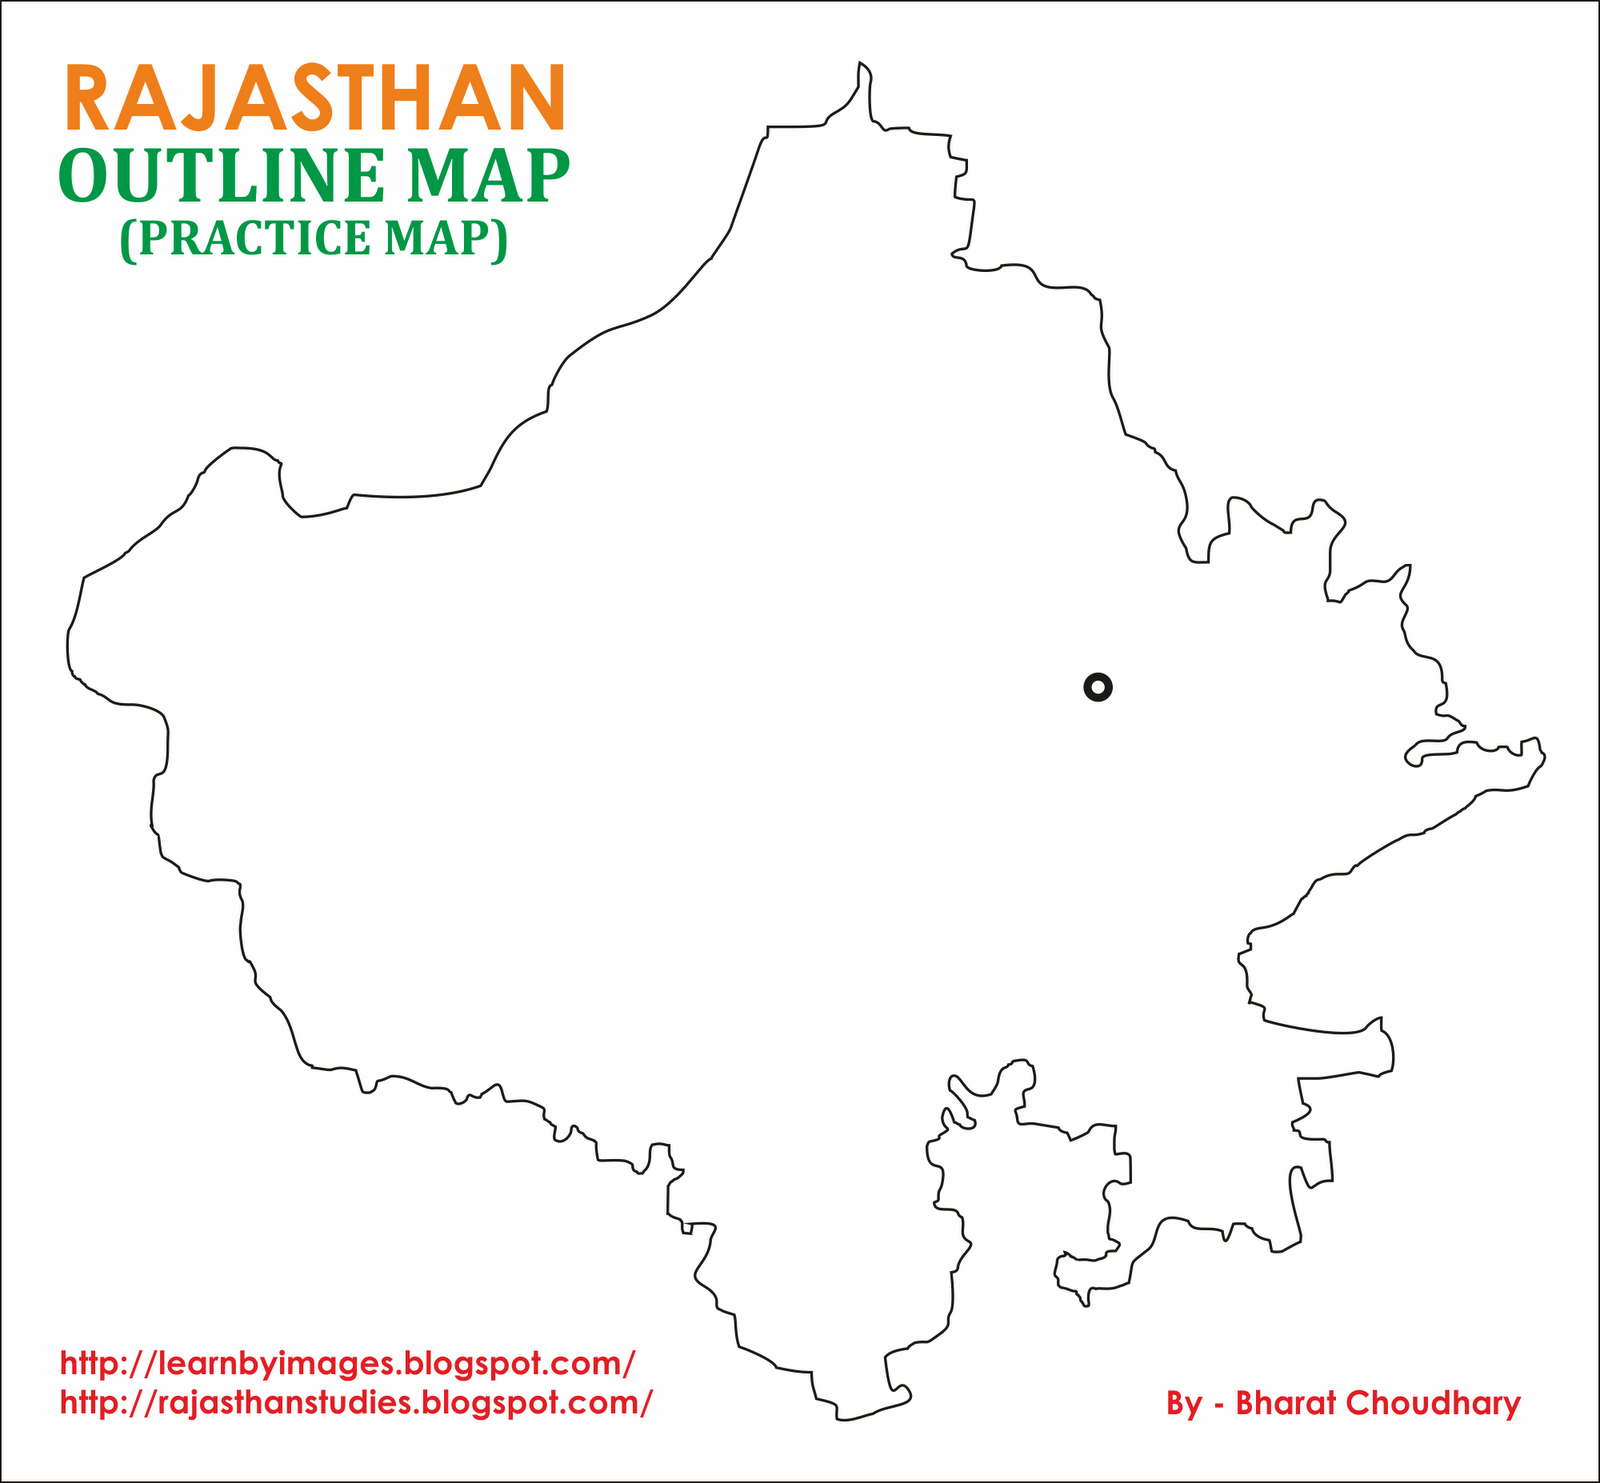 Learn by Images Rajasthan Outline Map Blank Practice Map